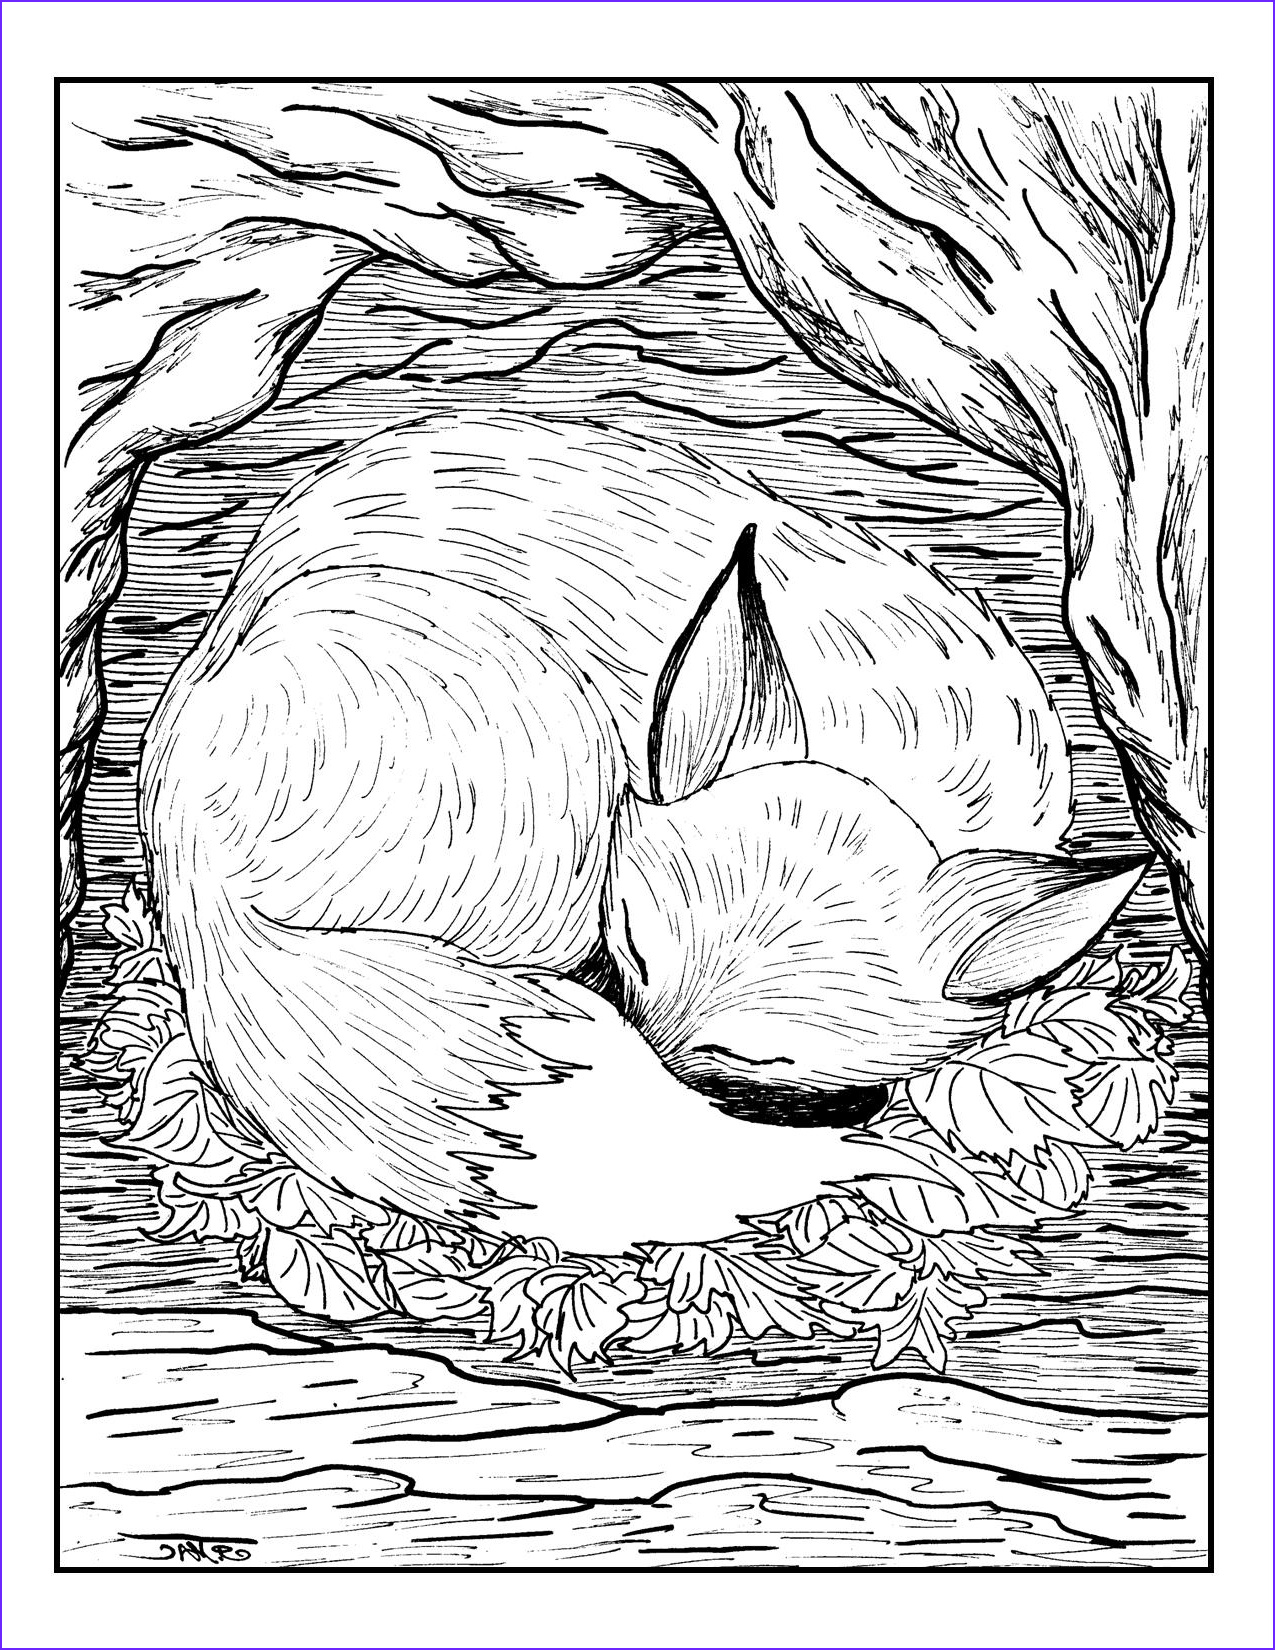 Coloring Pages for Grown Ups Elegant Photography Free Coloring Pages for Grown Ups Fox Sleeping Gianfreda